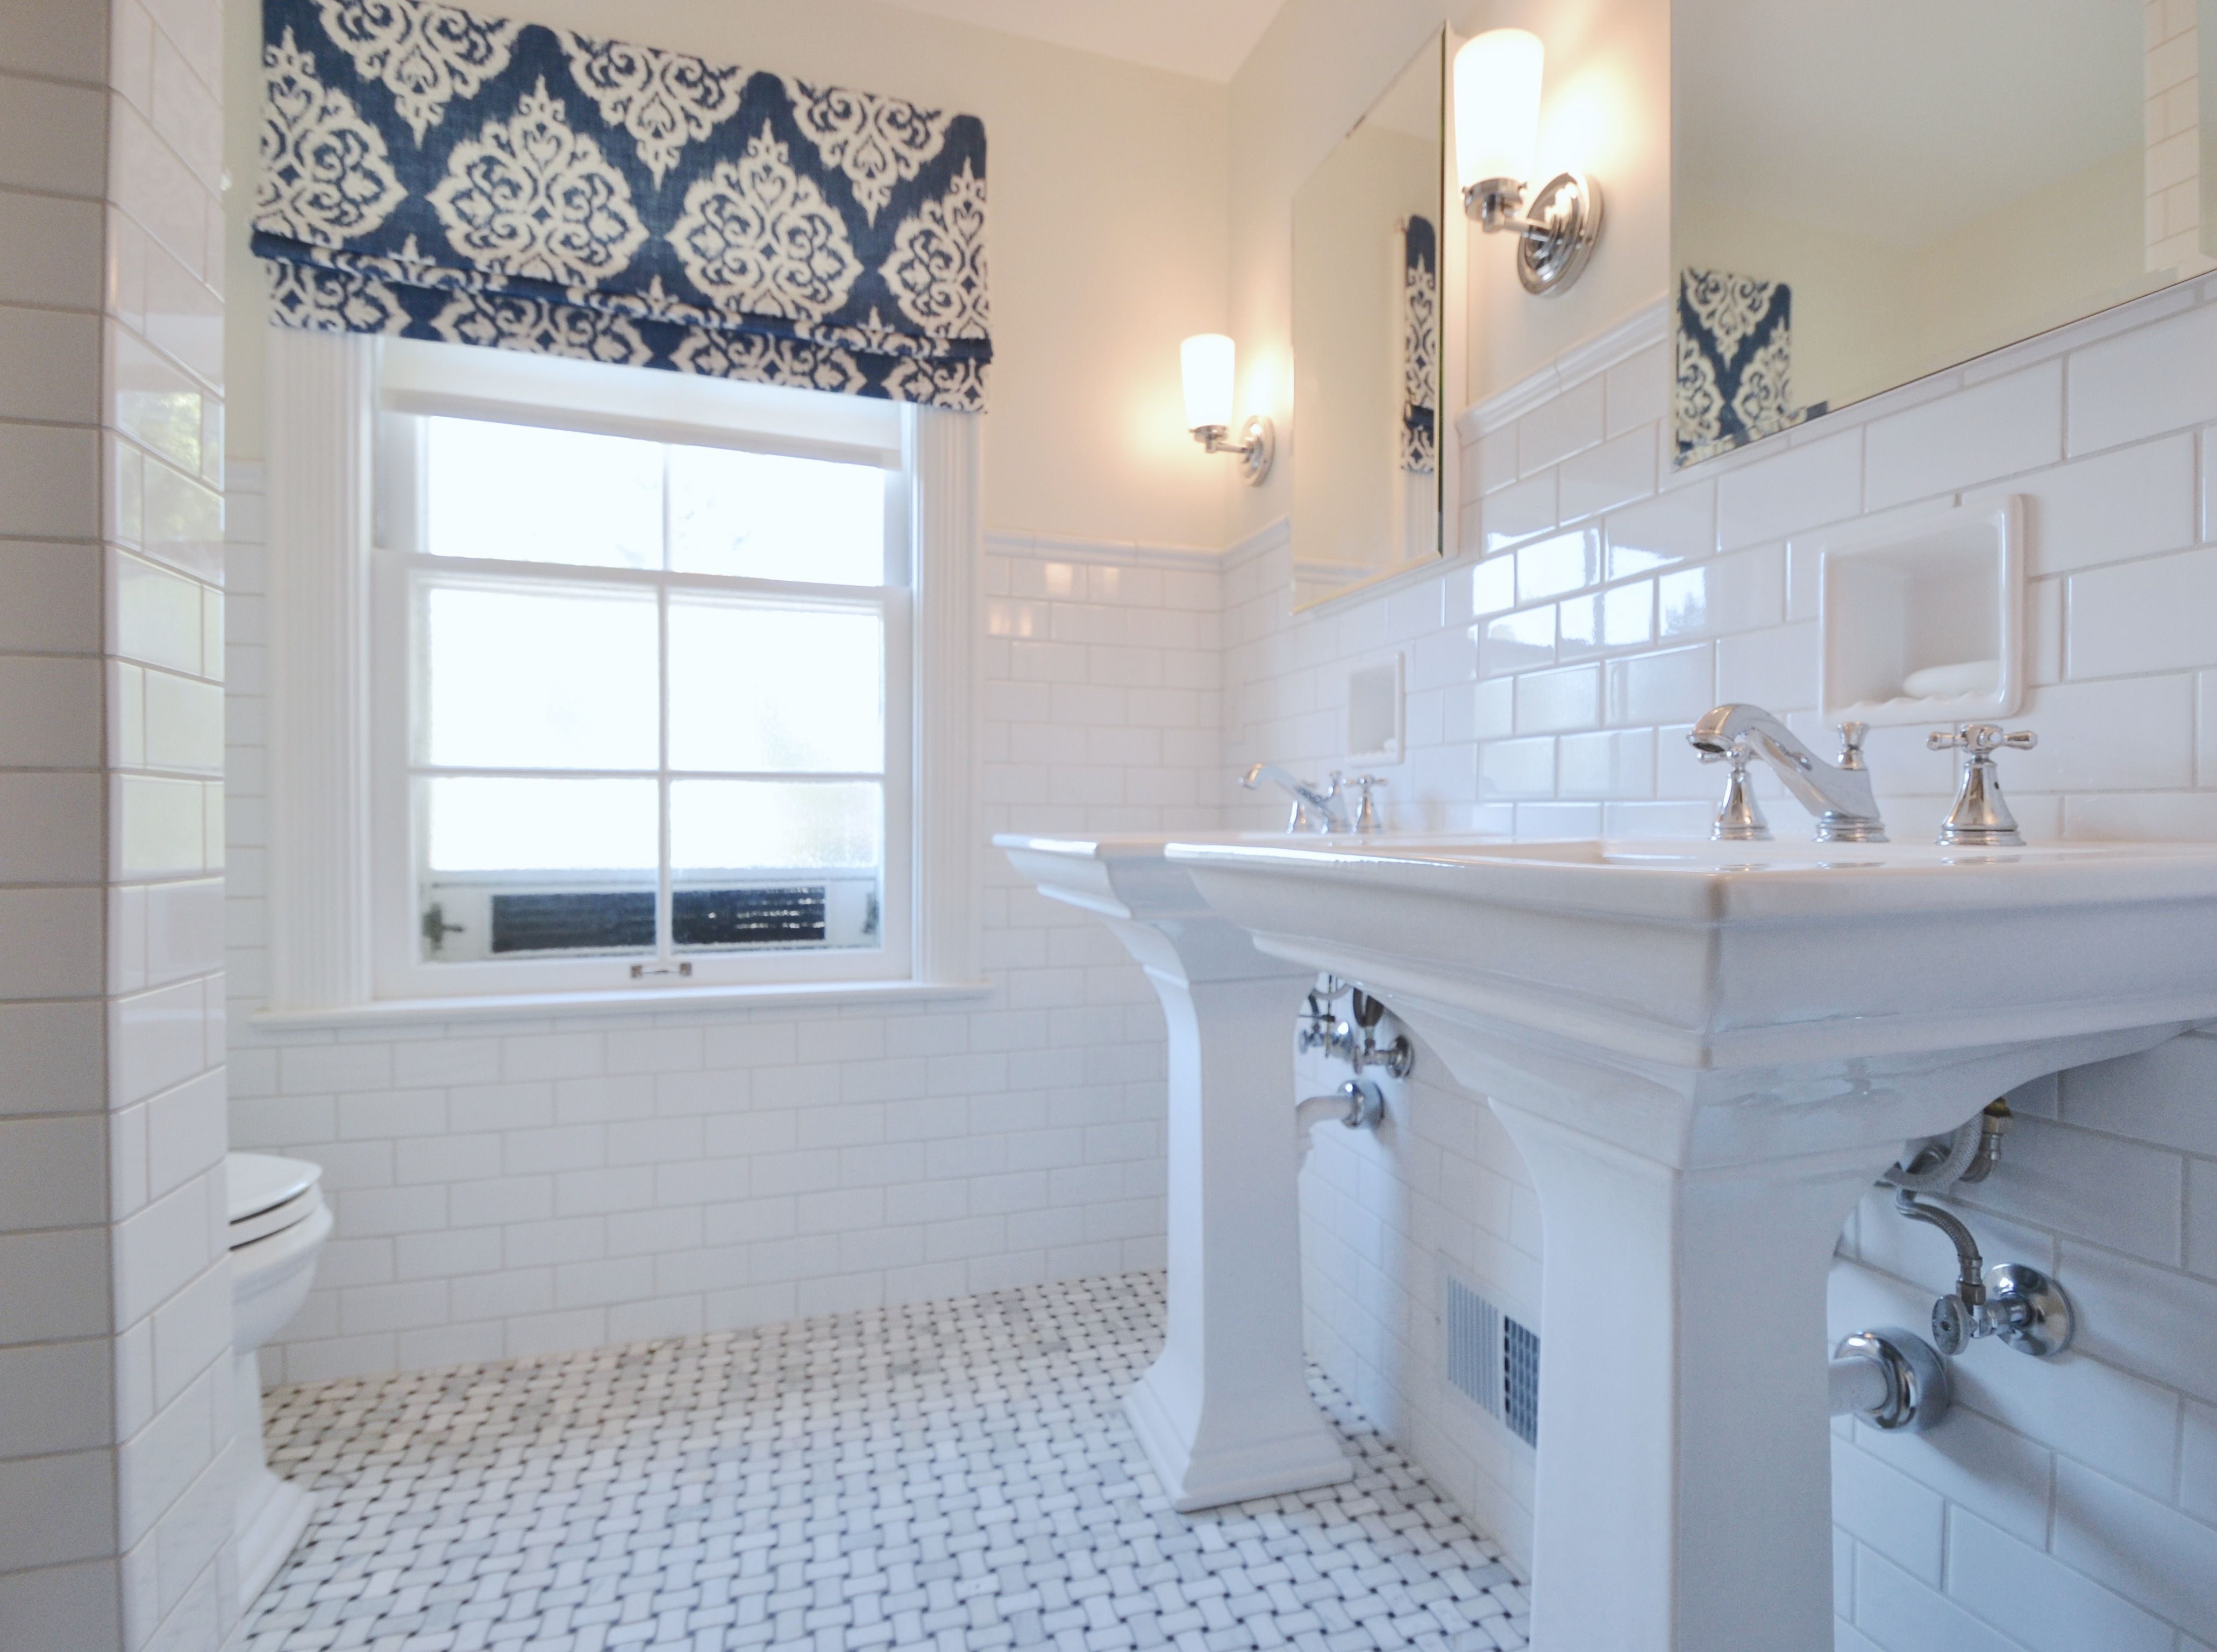 Beautiful White Bathroom With Blue Accents Love The Pedestal Sinks